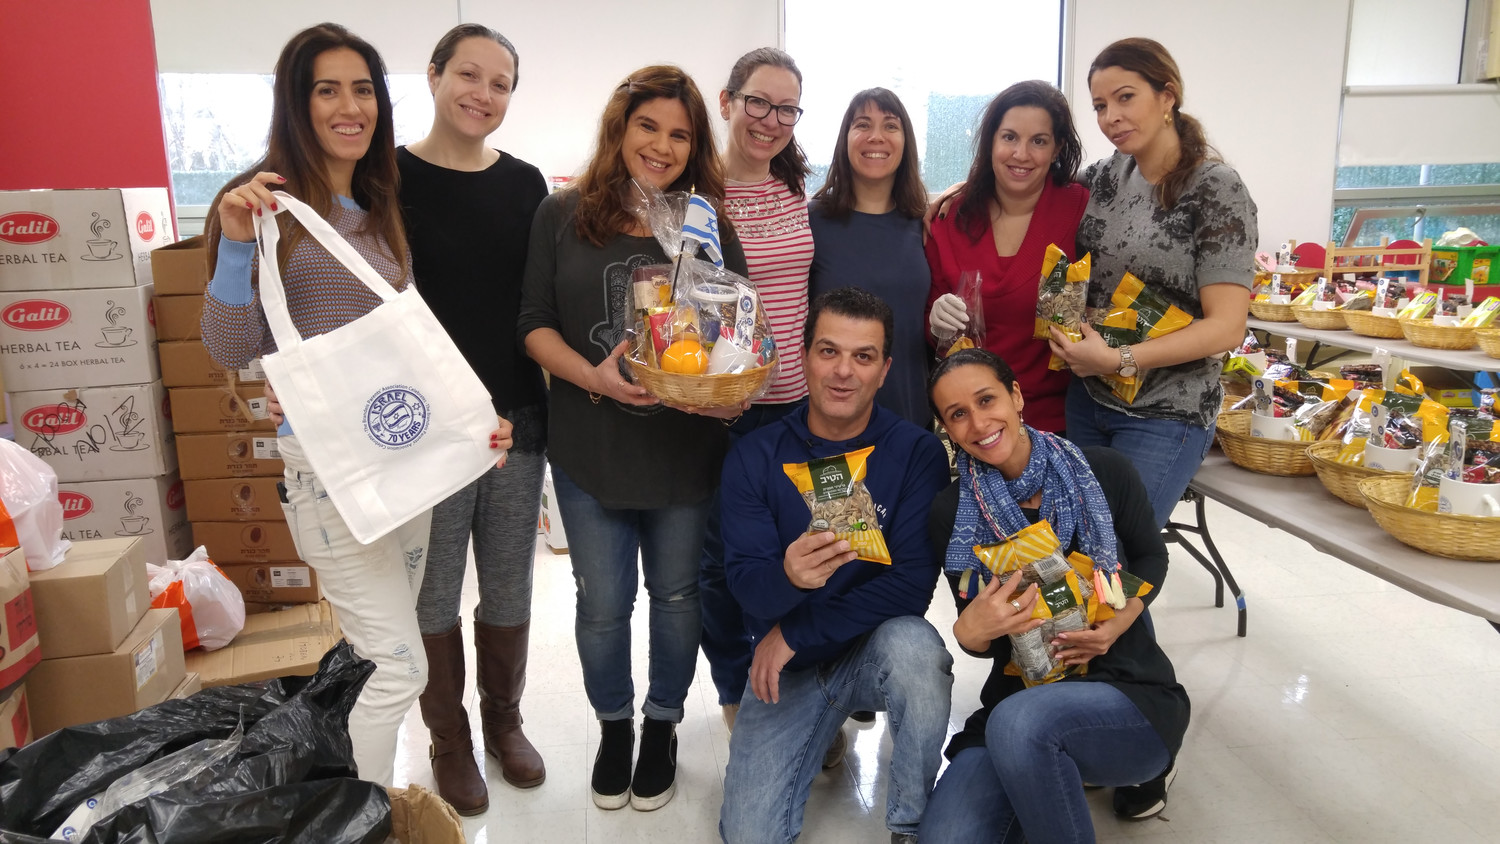 Members of the Brandeis School PTA packaged fruit basket given to members of the school community for Purim.